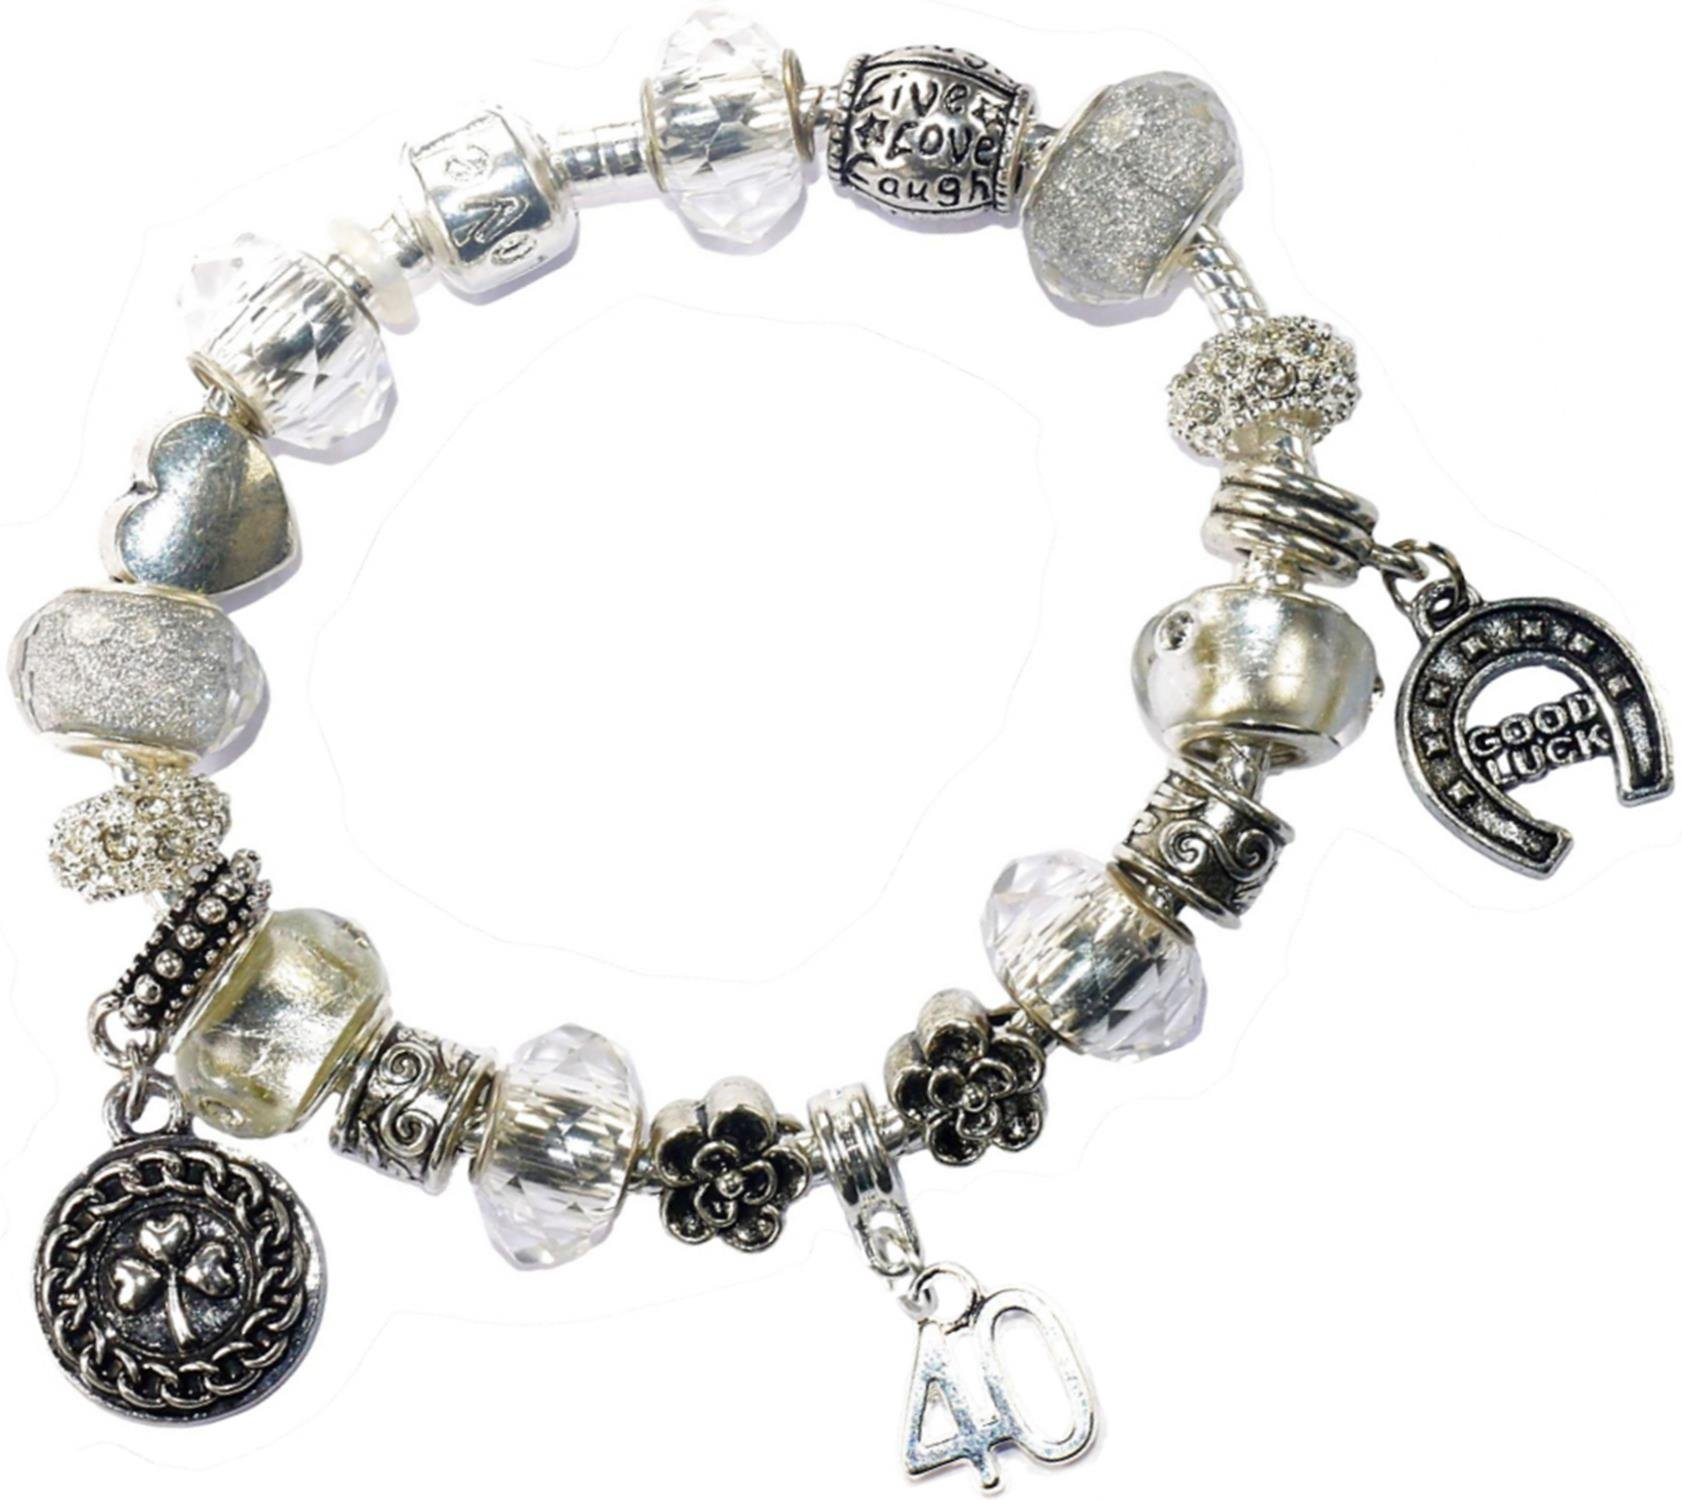 Charm Buddy 40th Birthday Iced Silver Good Luck Pandora Style Bracelet With Charms Gift Box Jewelry